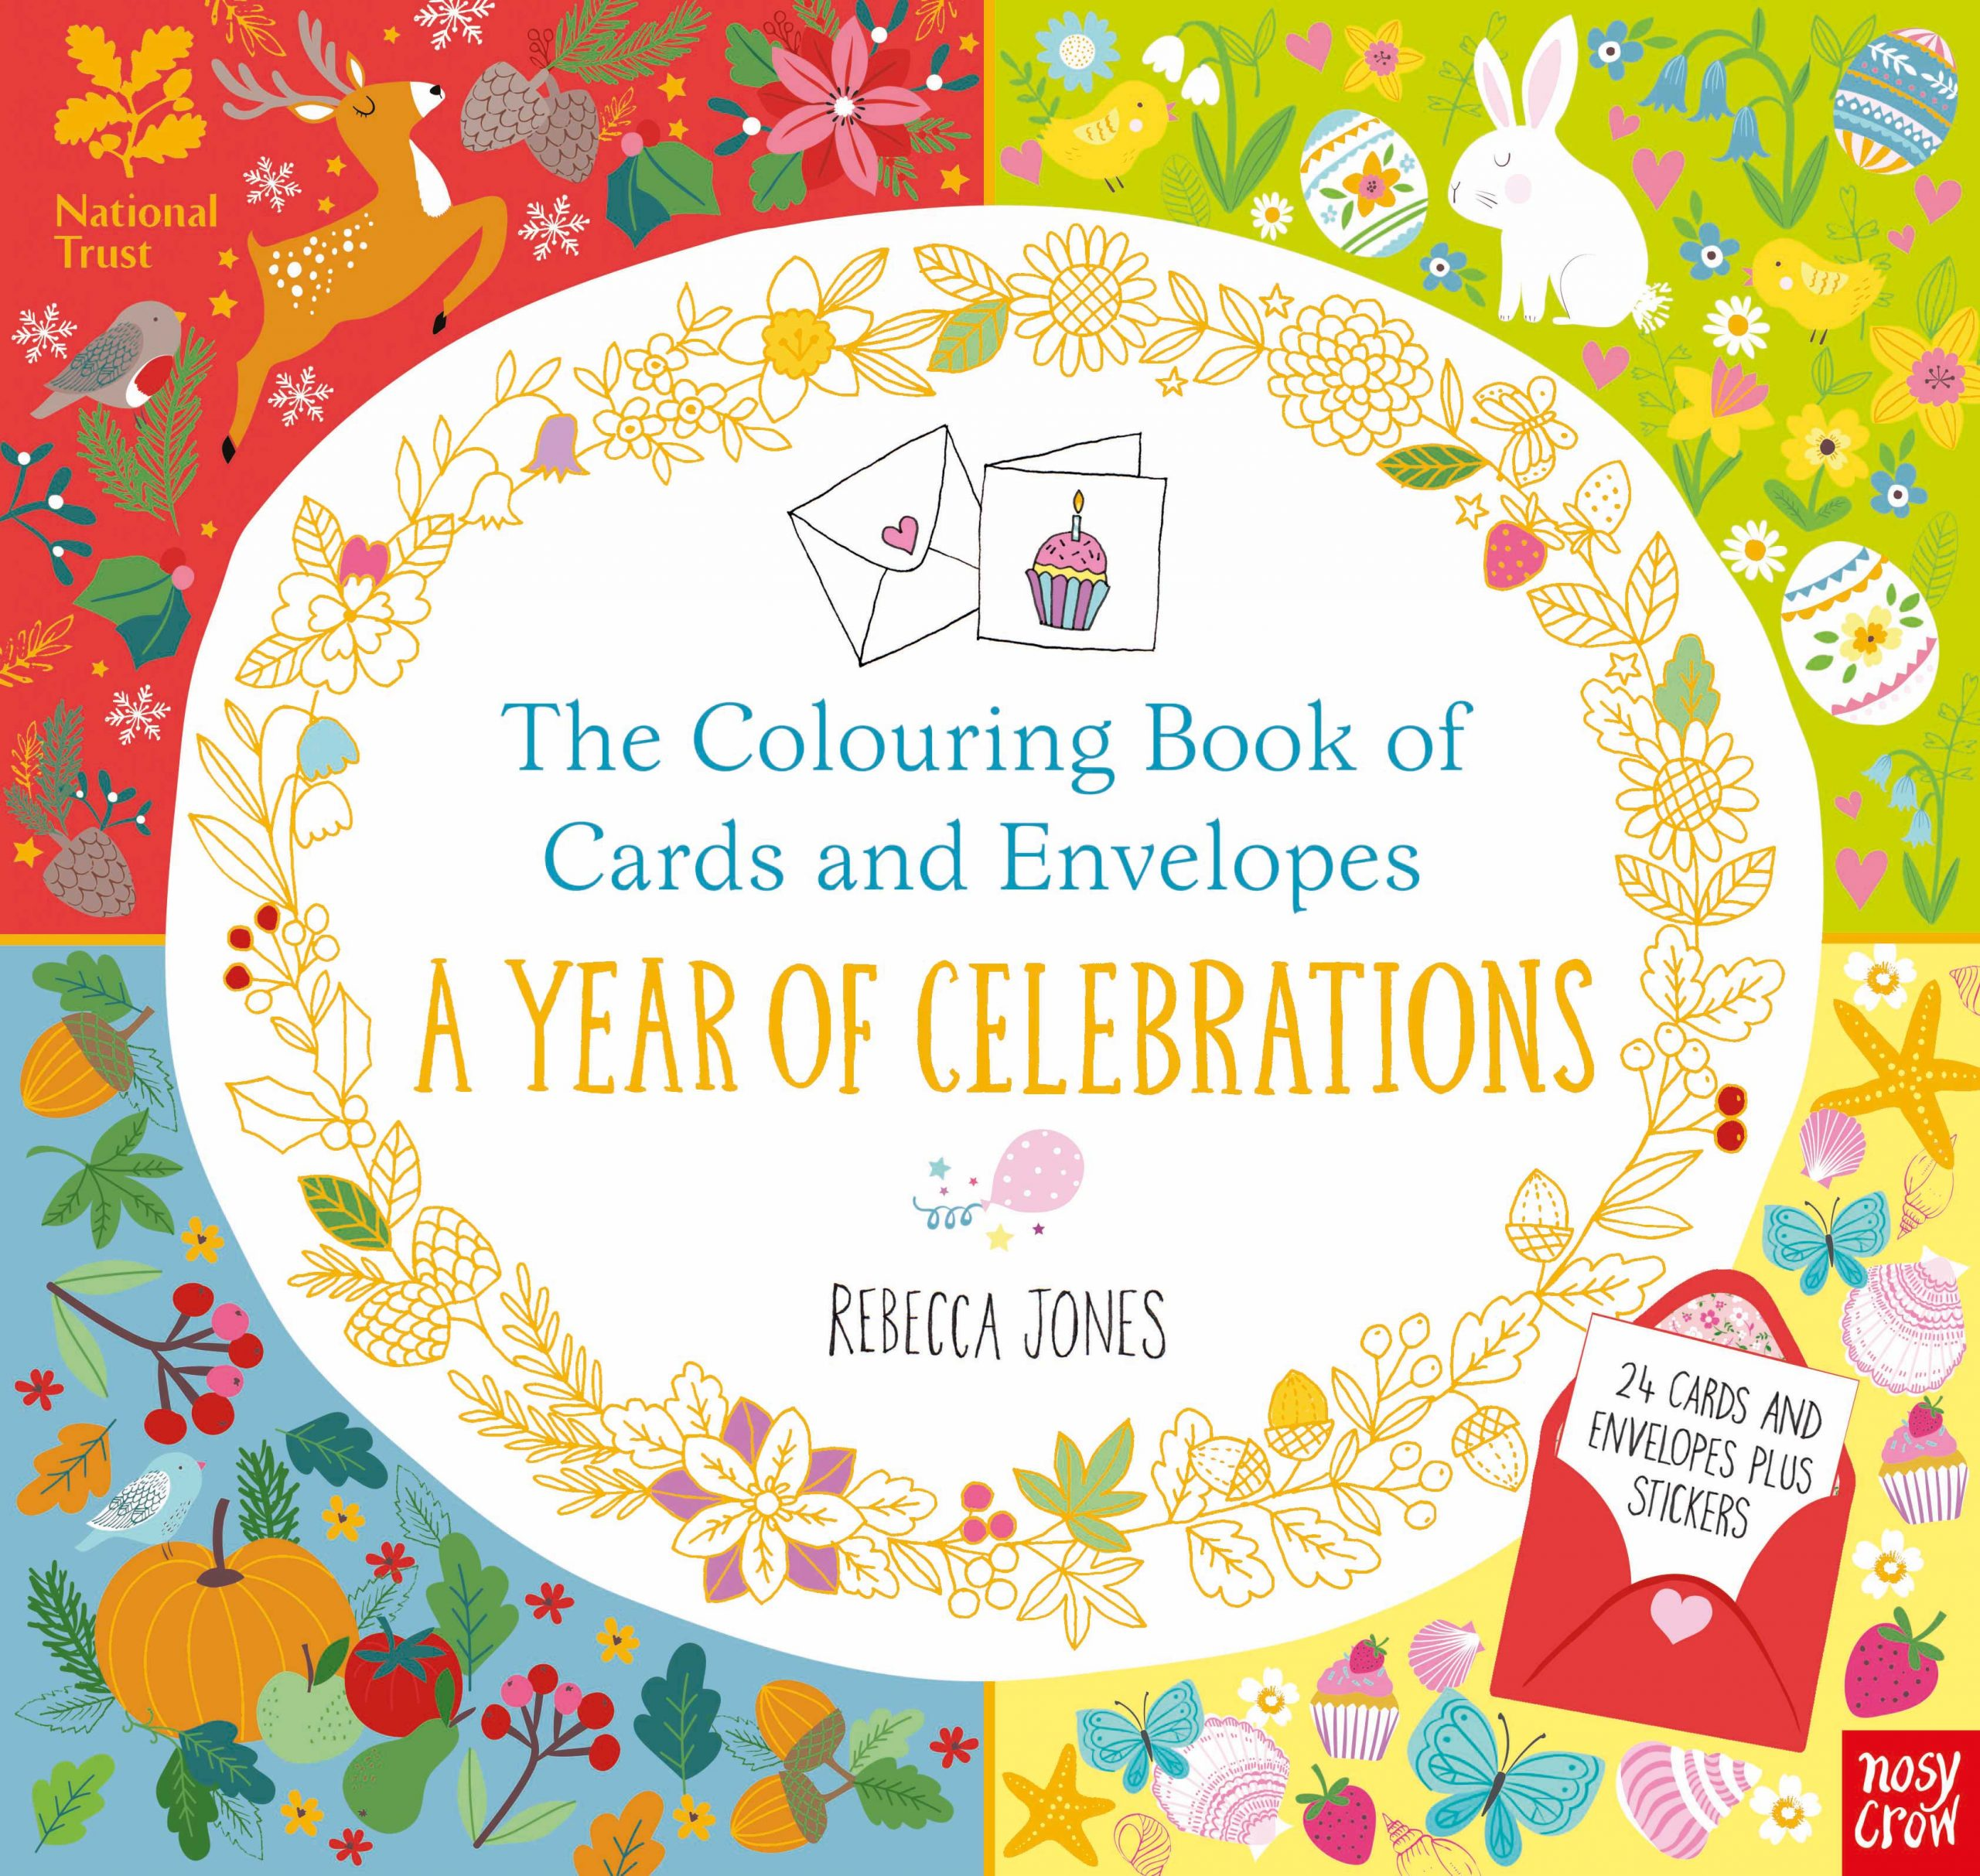 National-Trust-The-Colouring-Book-of-Cards-and-Envelopes-A-Year-of-Celebrations-112791-1.jpg